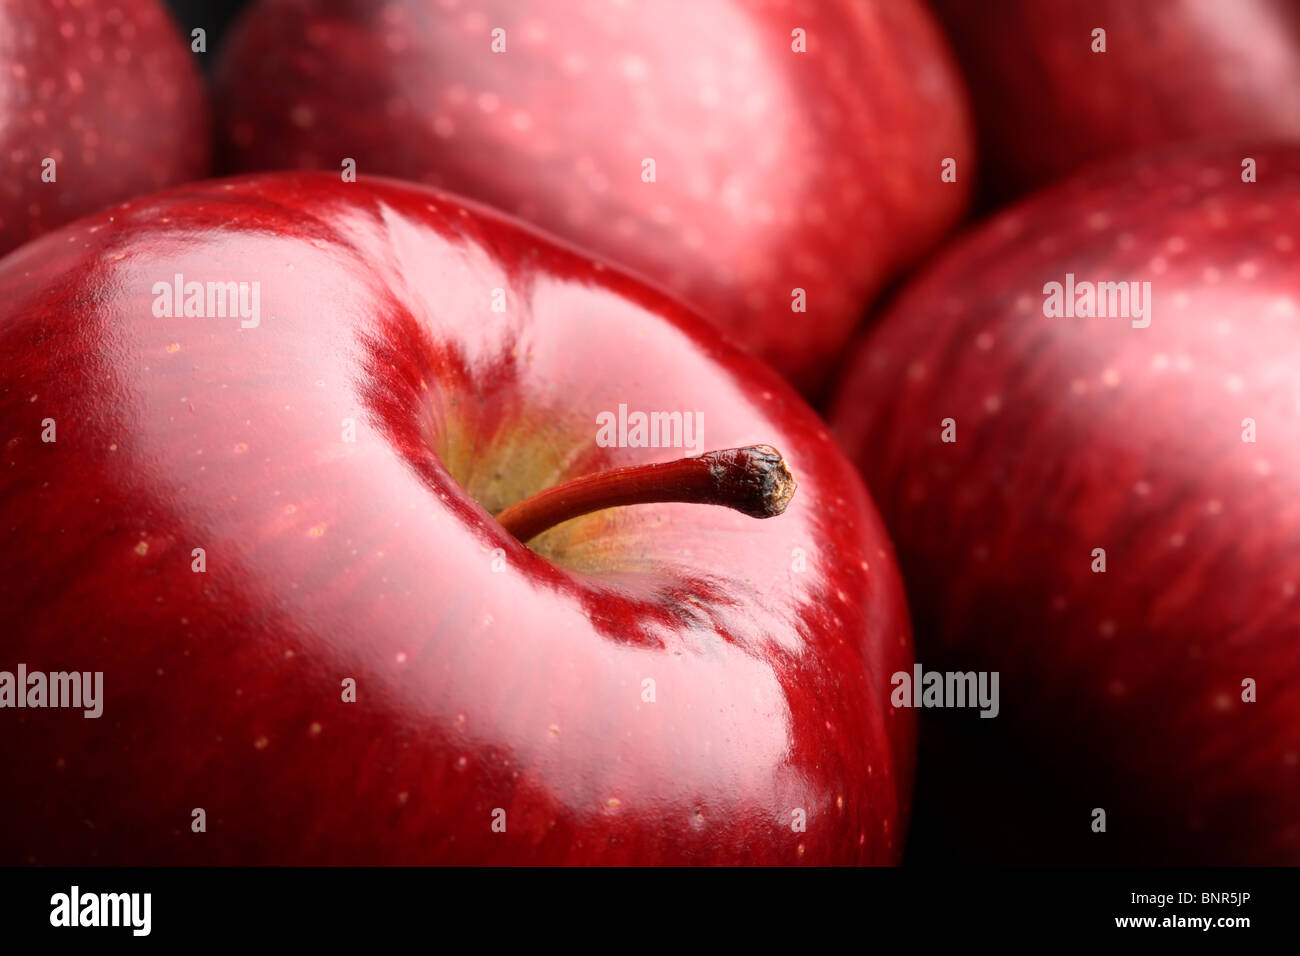 Close-up of fresh dark red apples - Stock Image